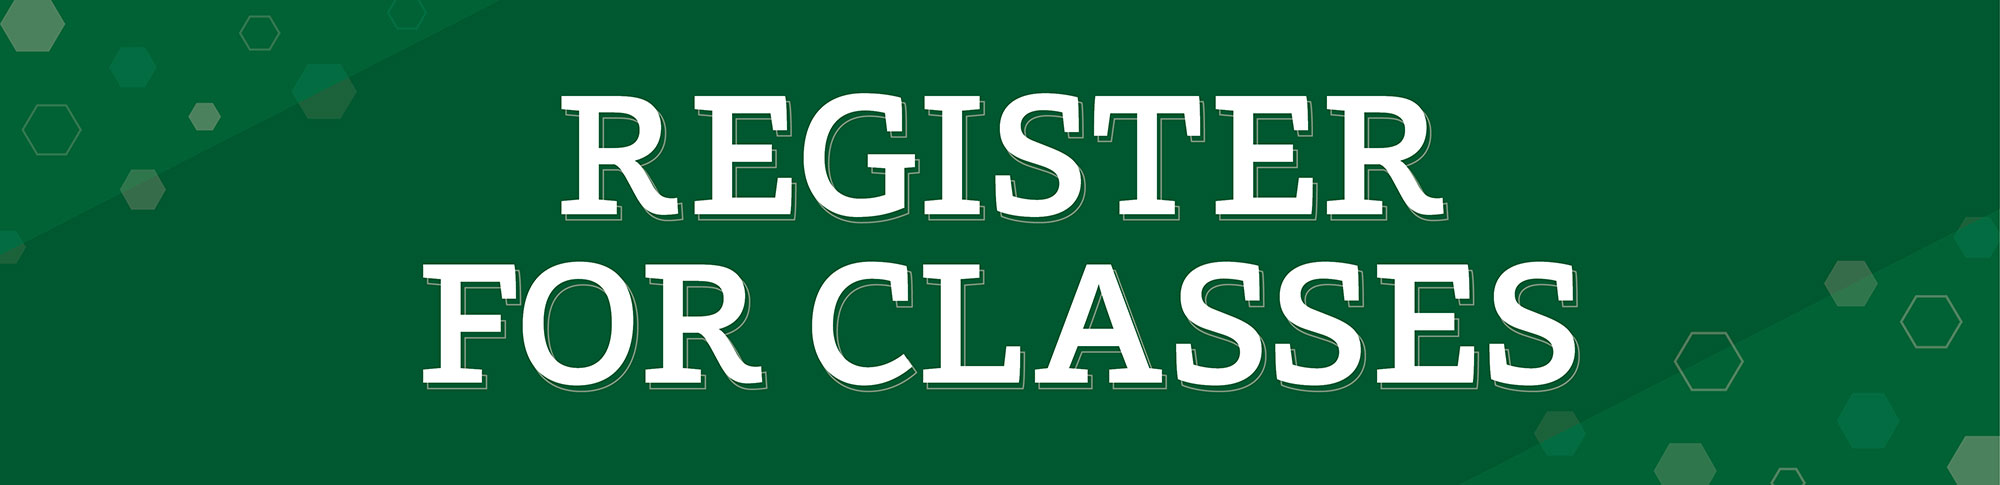 Registration and Records can help get you in the right classes and on the path to your degree.